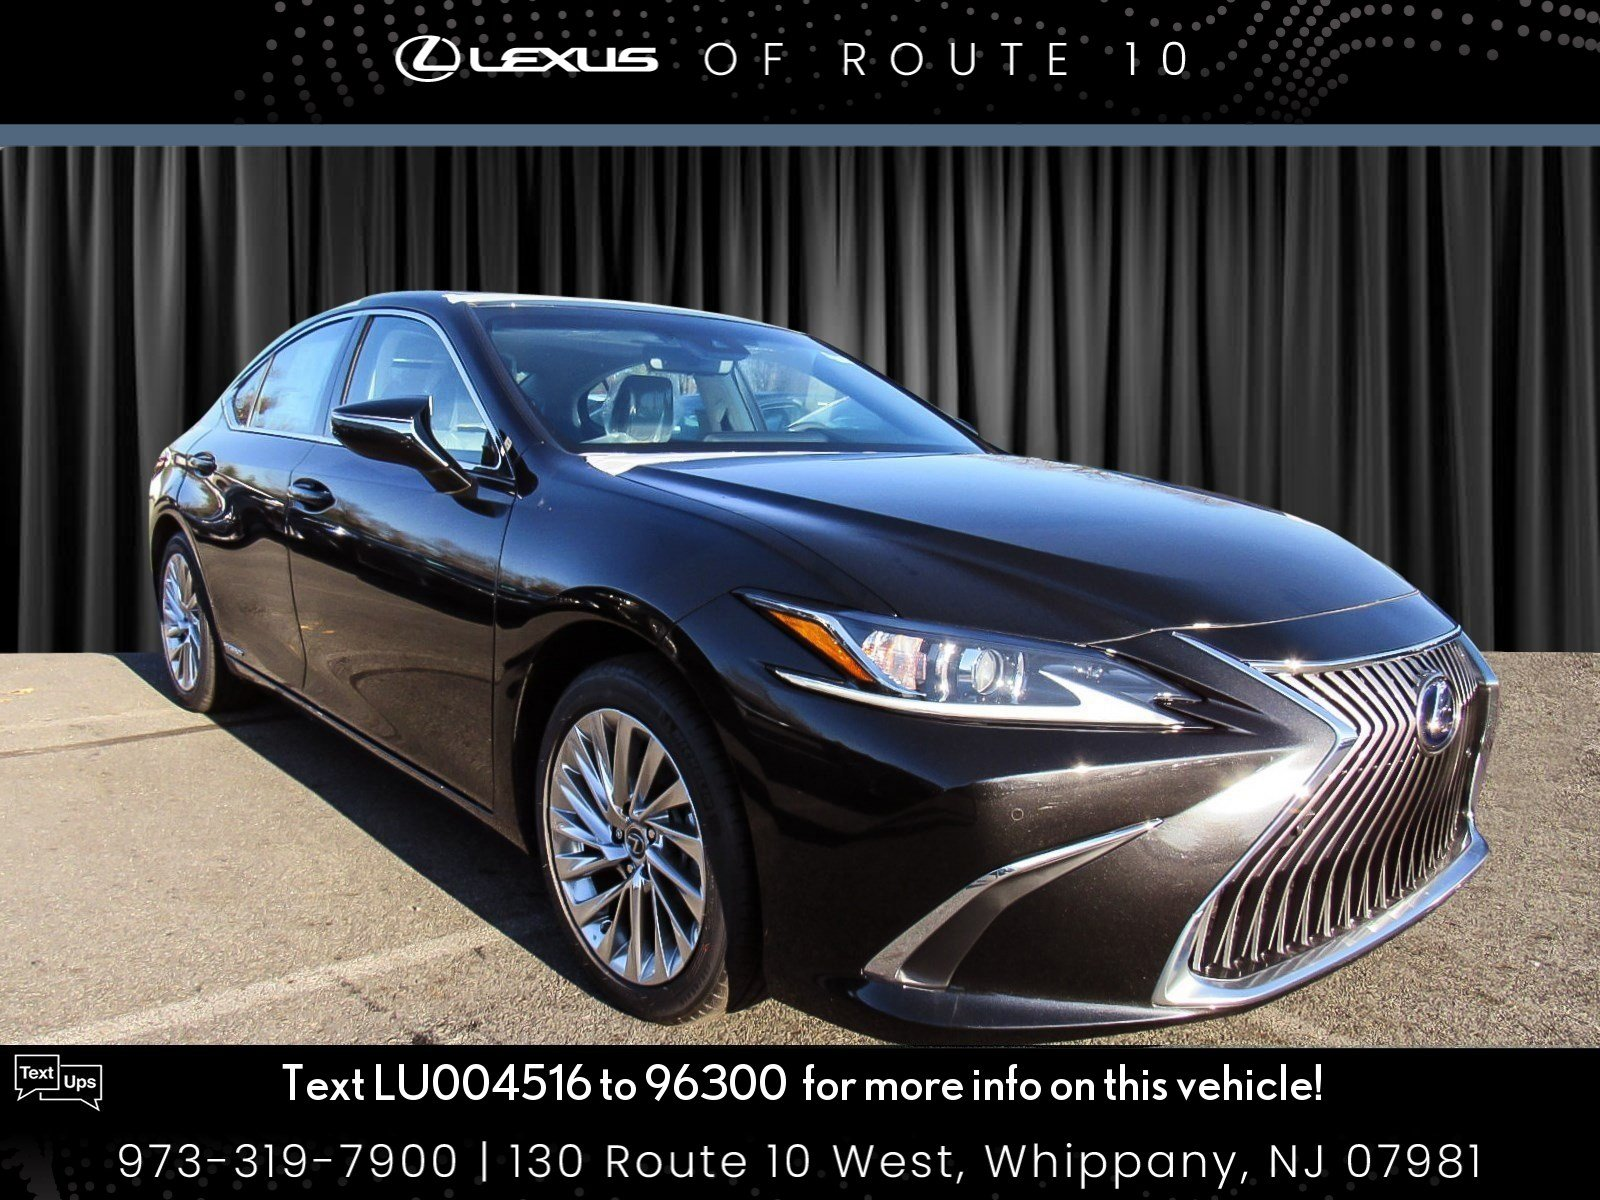 New 2020 Lexus ES 300h LUXURY ES 300h Luxury